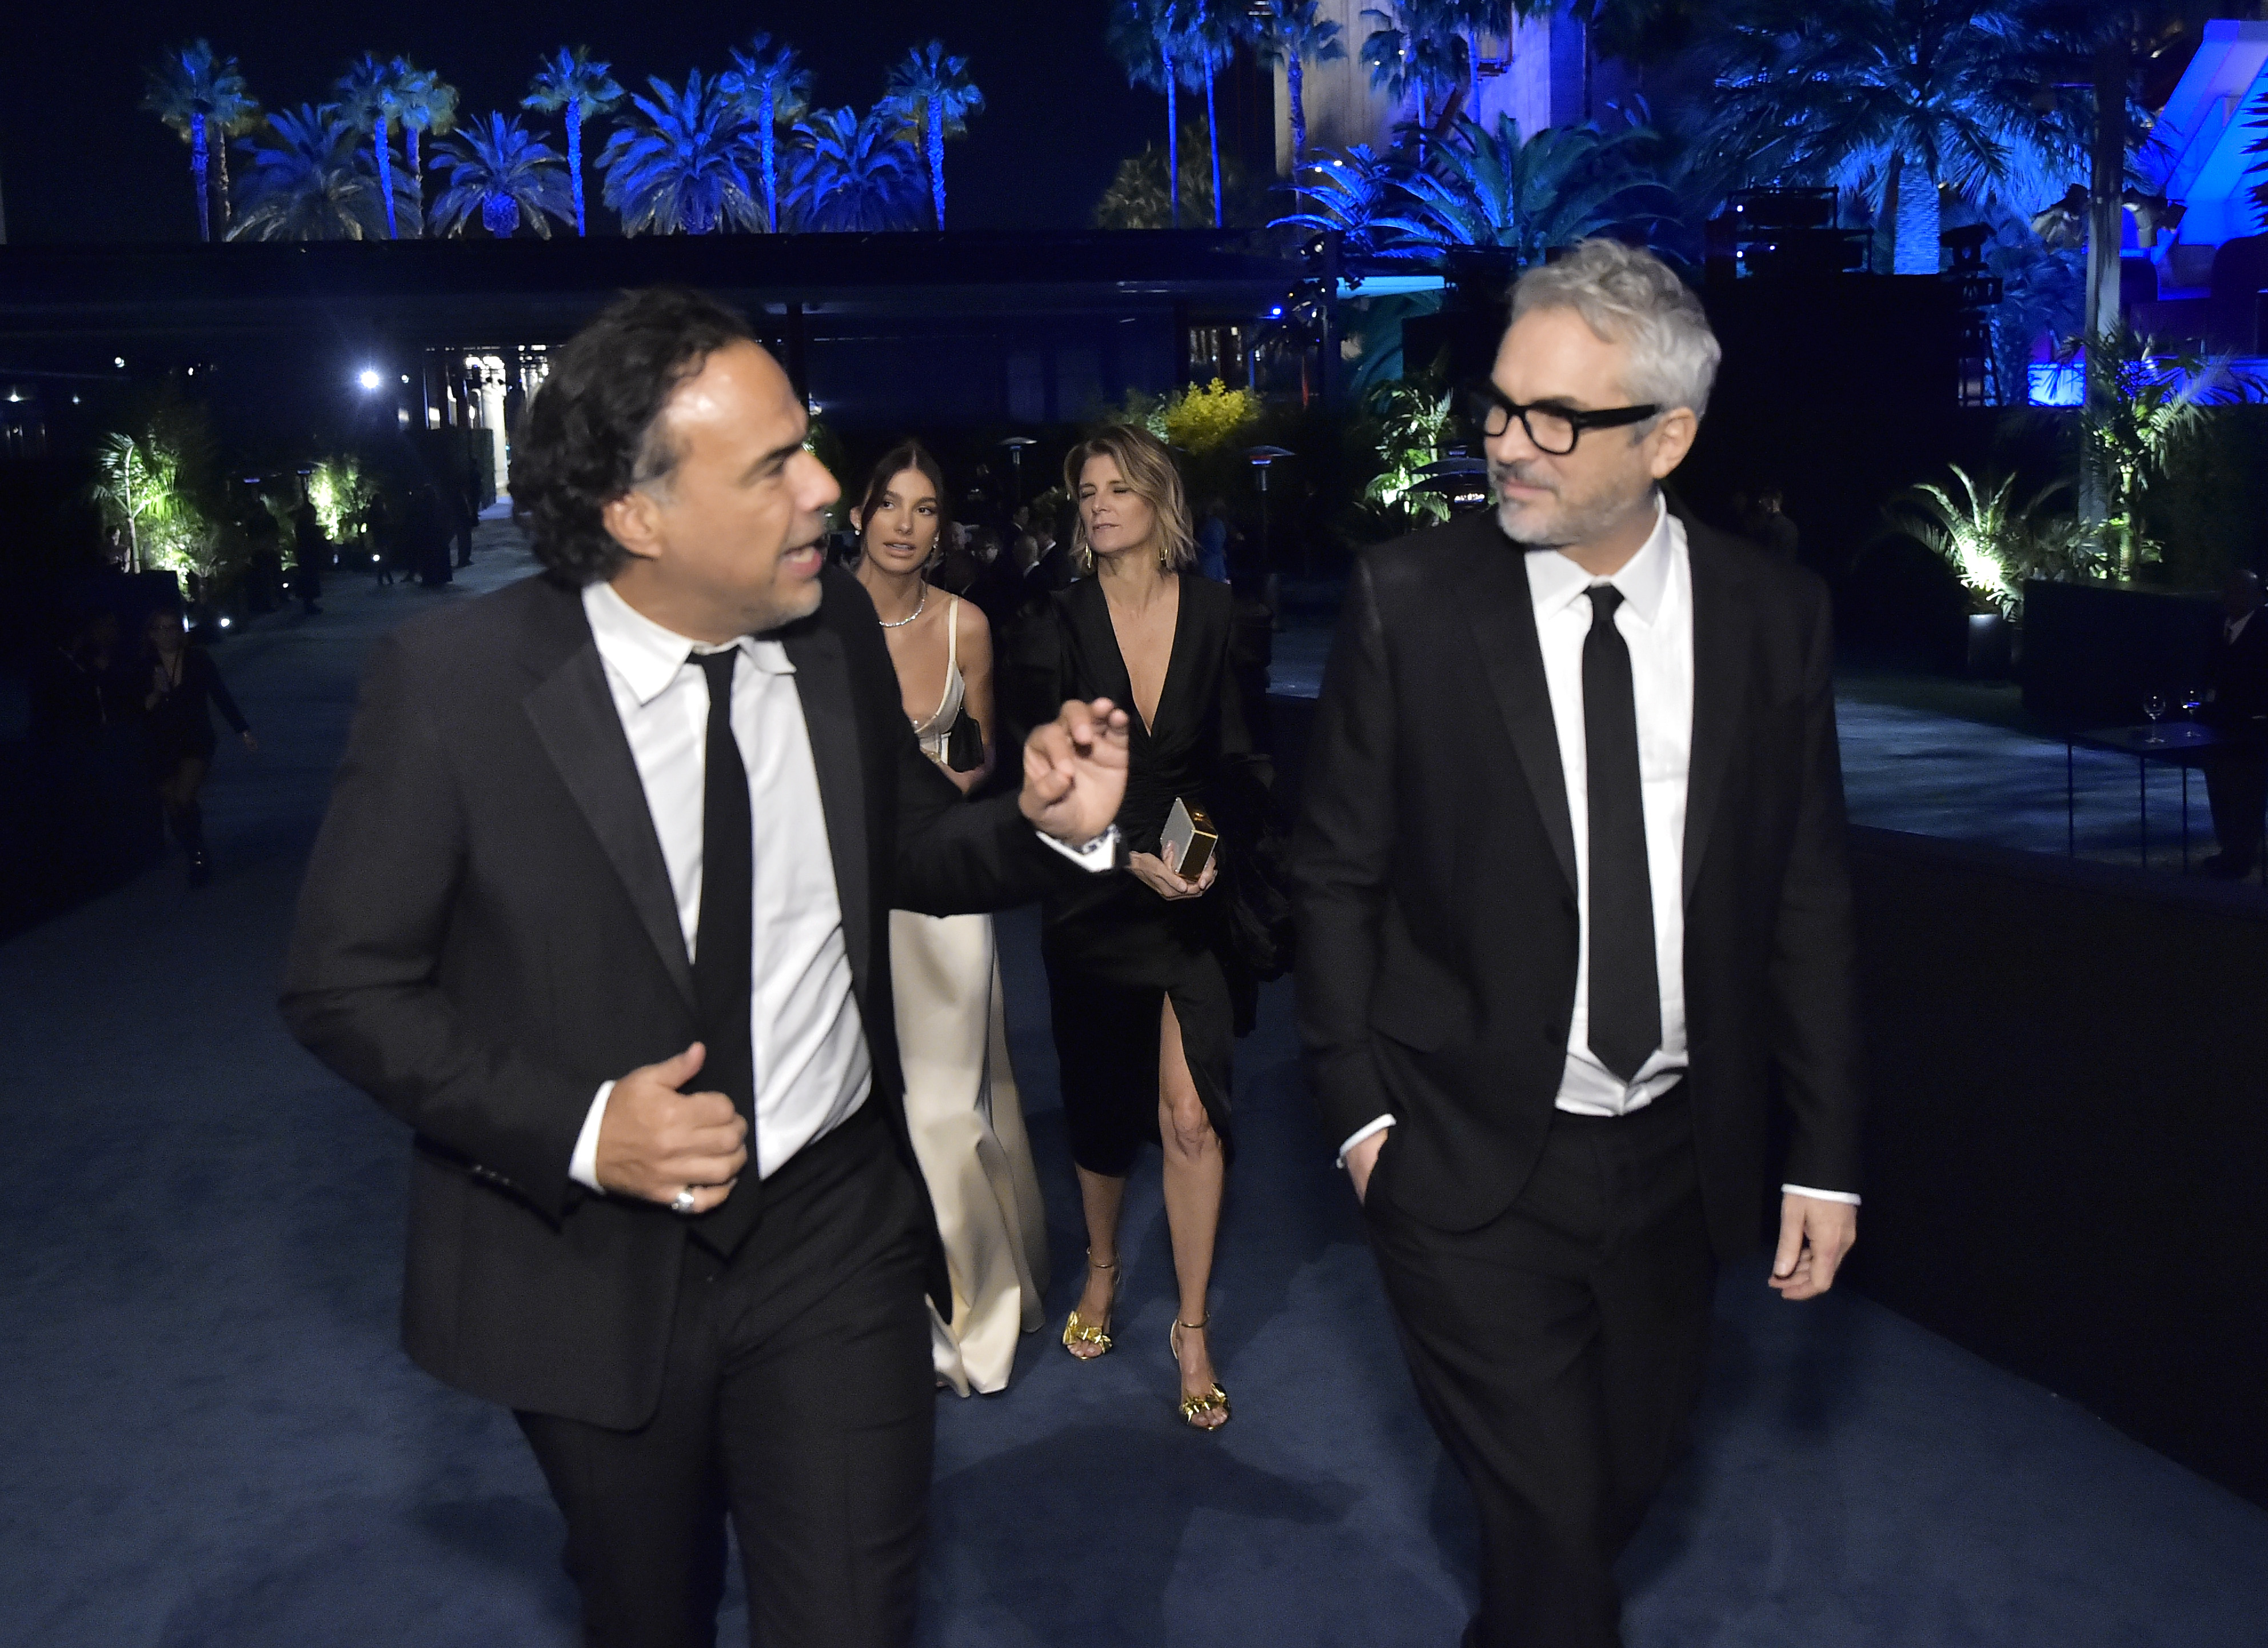 LOS ANGELES, CALIFORNIA - NOVEMBER 02: Alejandro González Iñárritu, Camila Morrone, Maria Eladia and Alfonso Cuarón, wearing Gucci, attend the 2019 LACMA Art + Film Gala Presented By Gucci at LACMA on November 02, 2019 in Los Angeles, California. (Photo by Stefanie Keenan/Getty Images for LACMA)